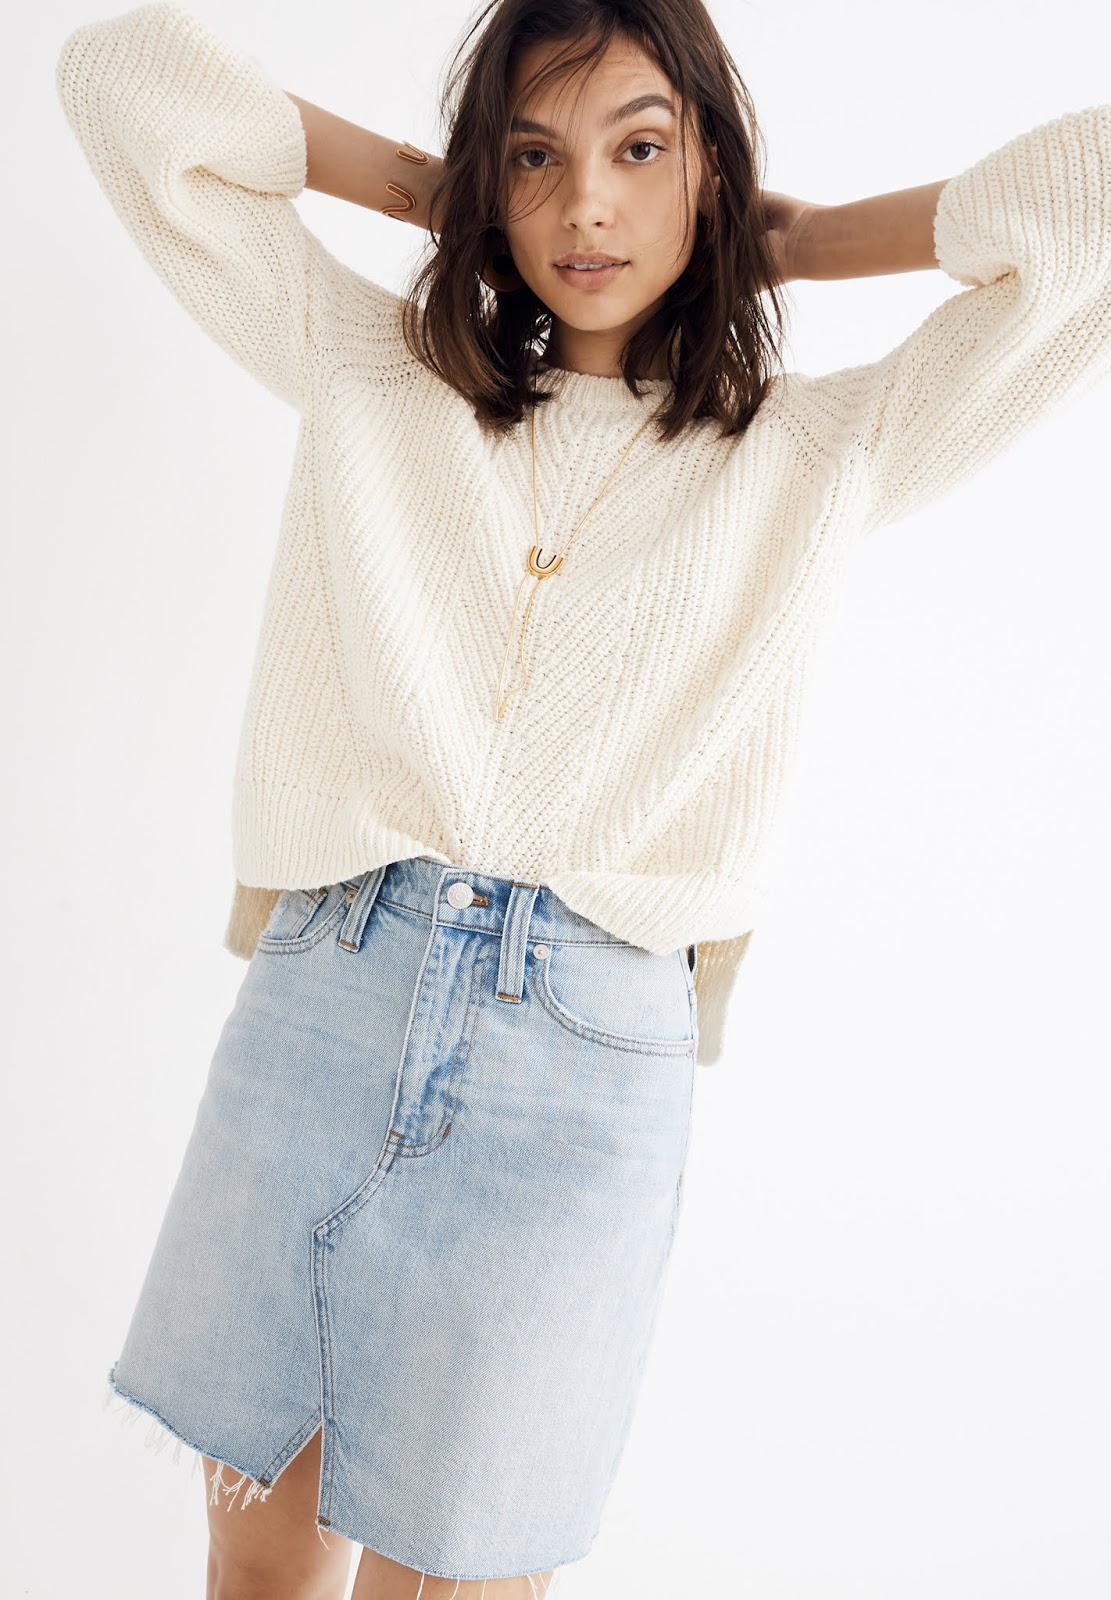 Where to find Anthropologie style besides Anthropologie :: Effortlessly with Roxy